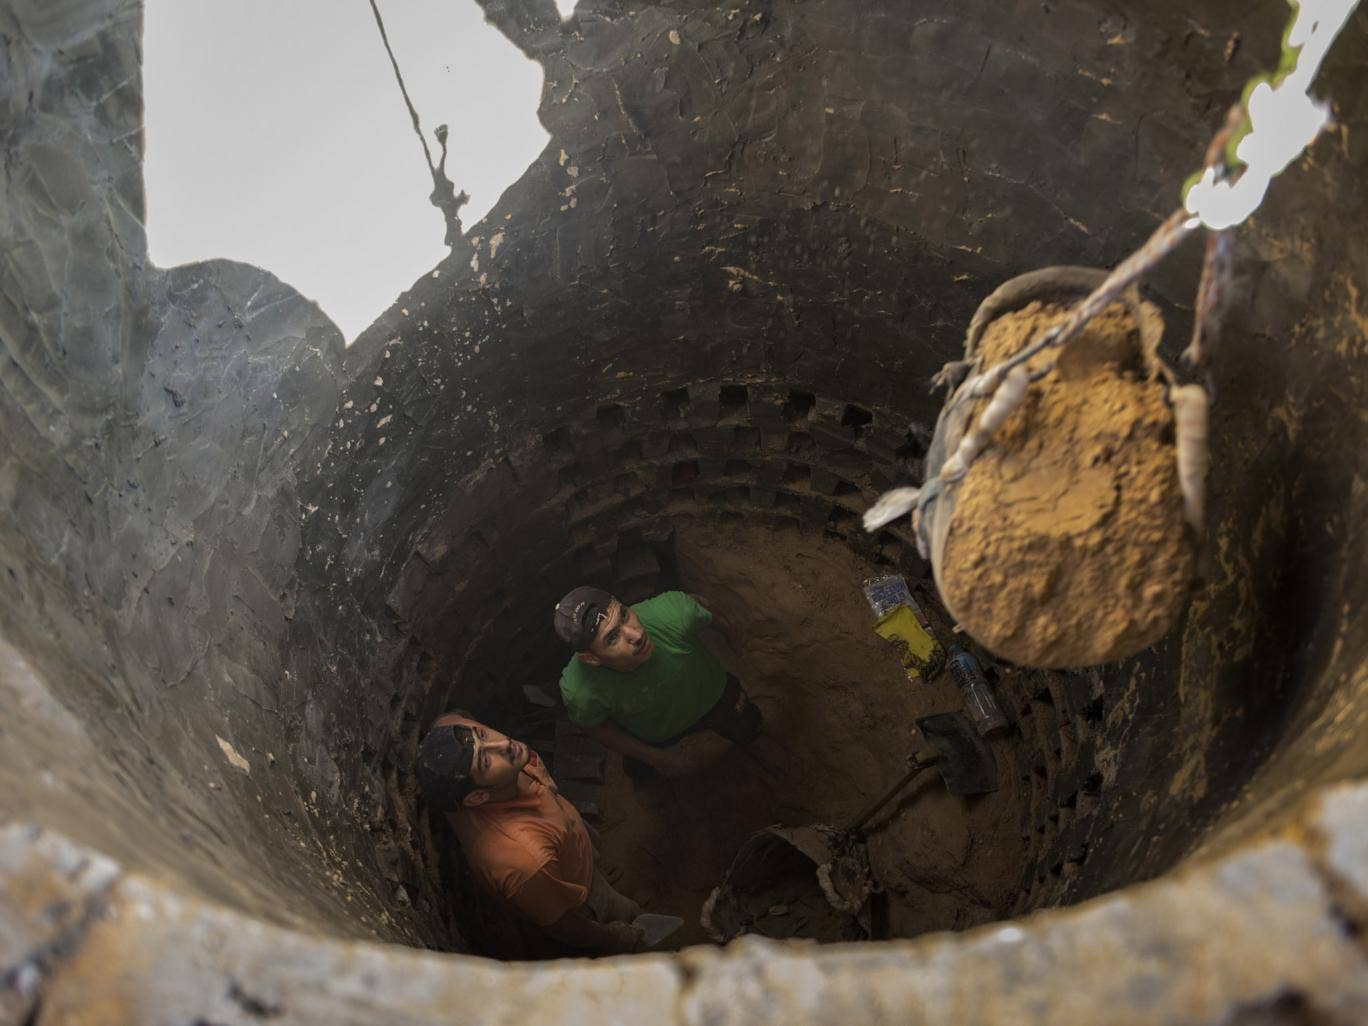 MIDEAST TUNNELS: Ismael al-Arja, 25, and Mahmoud al-Arja, 25, watch as a bucket of soil is hoisted out of the tunnel they are digging along the Egypt-Gaza border.